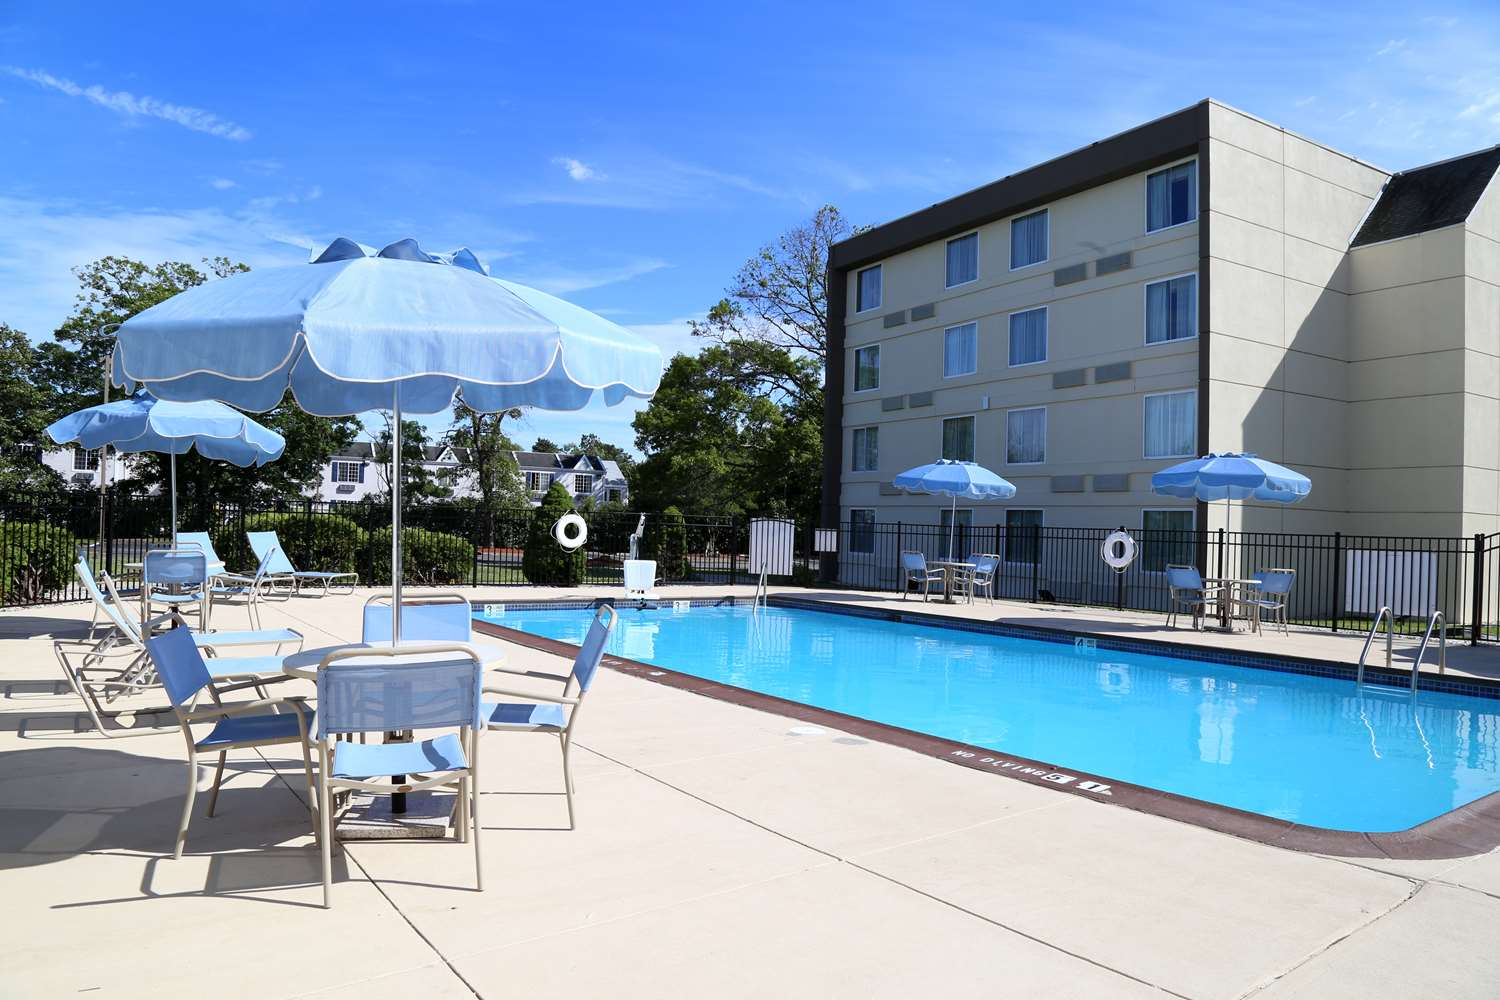 Pool - Wingate by Wyndham Hotel Egg Harbor Township